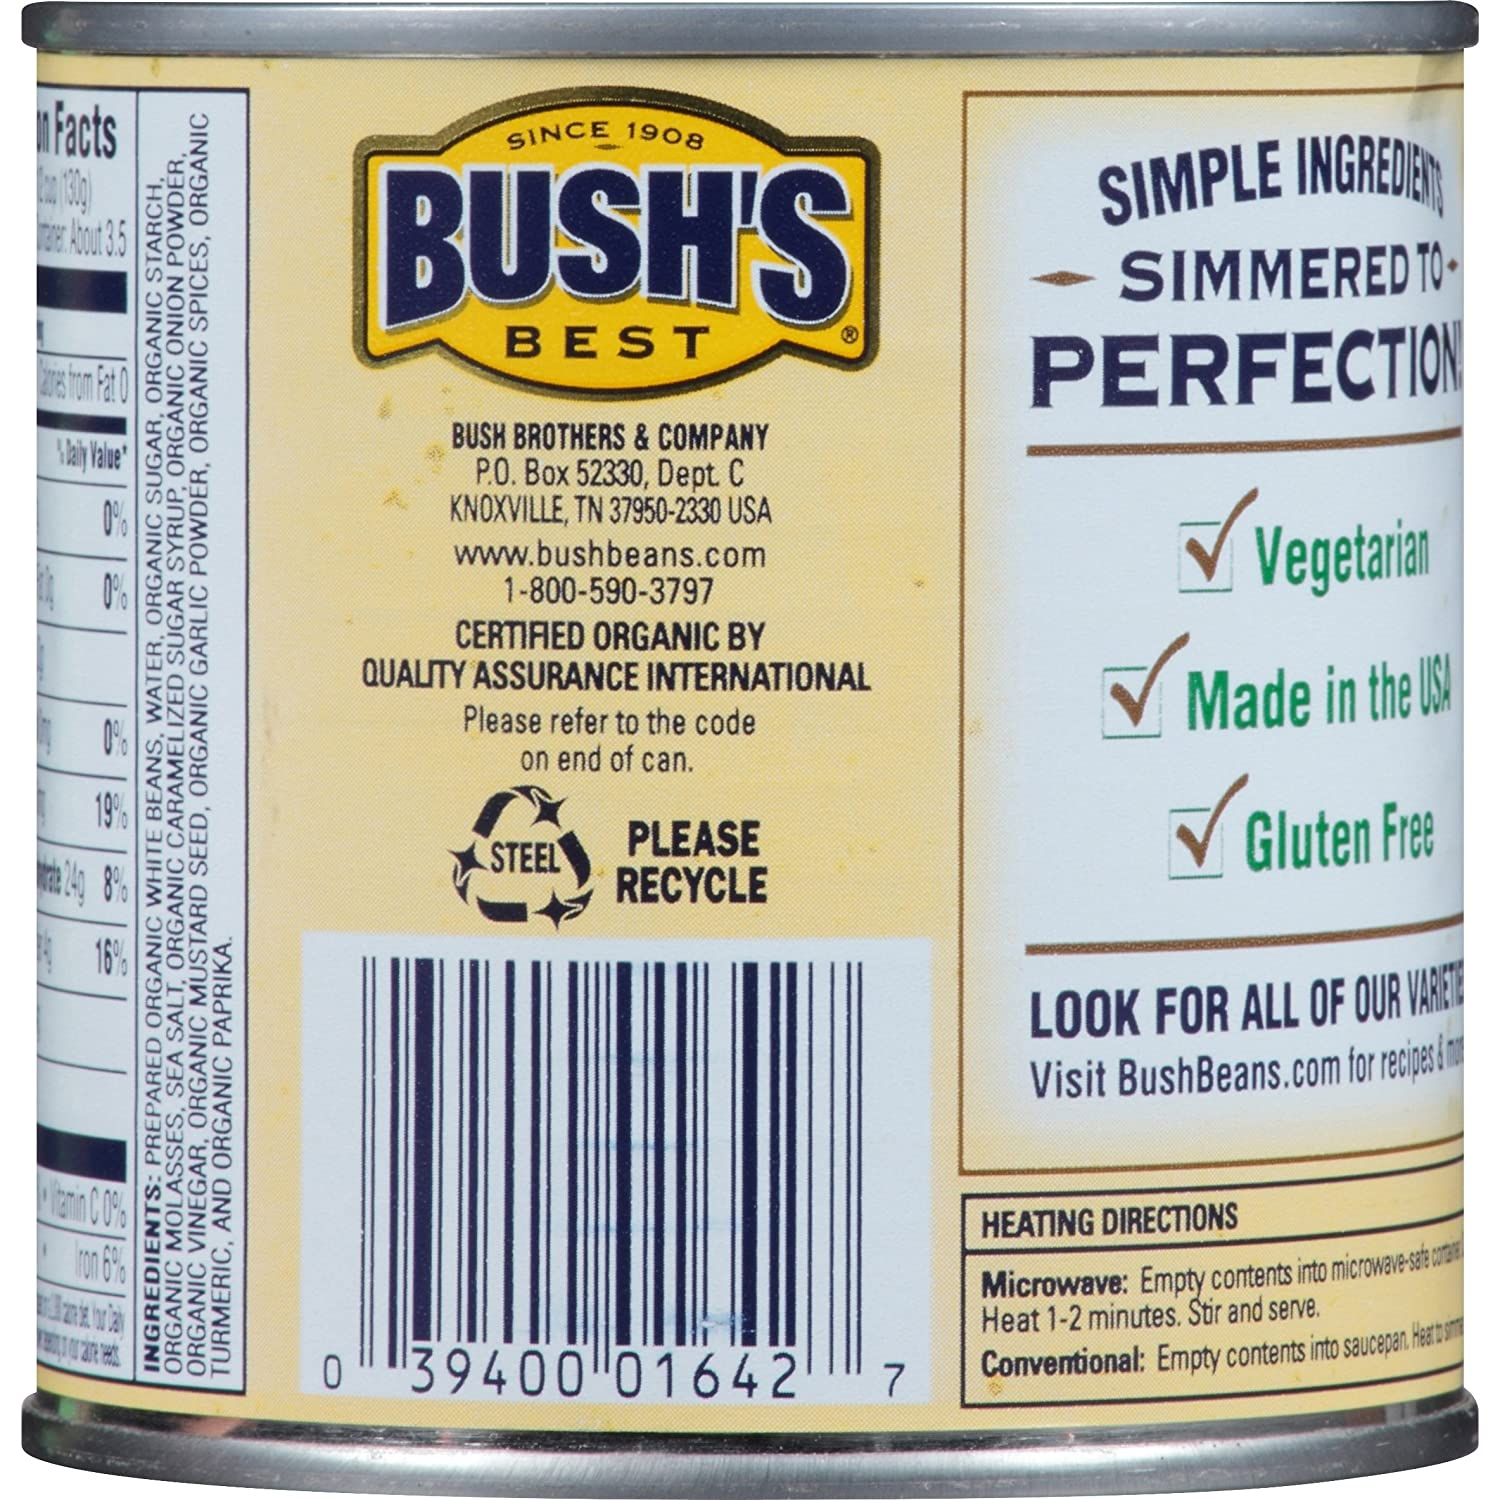 Amazon.com : Bush's Best Organic Baked Beans, 16 oz (12 cans) : Grocery & Gourmet Food